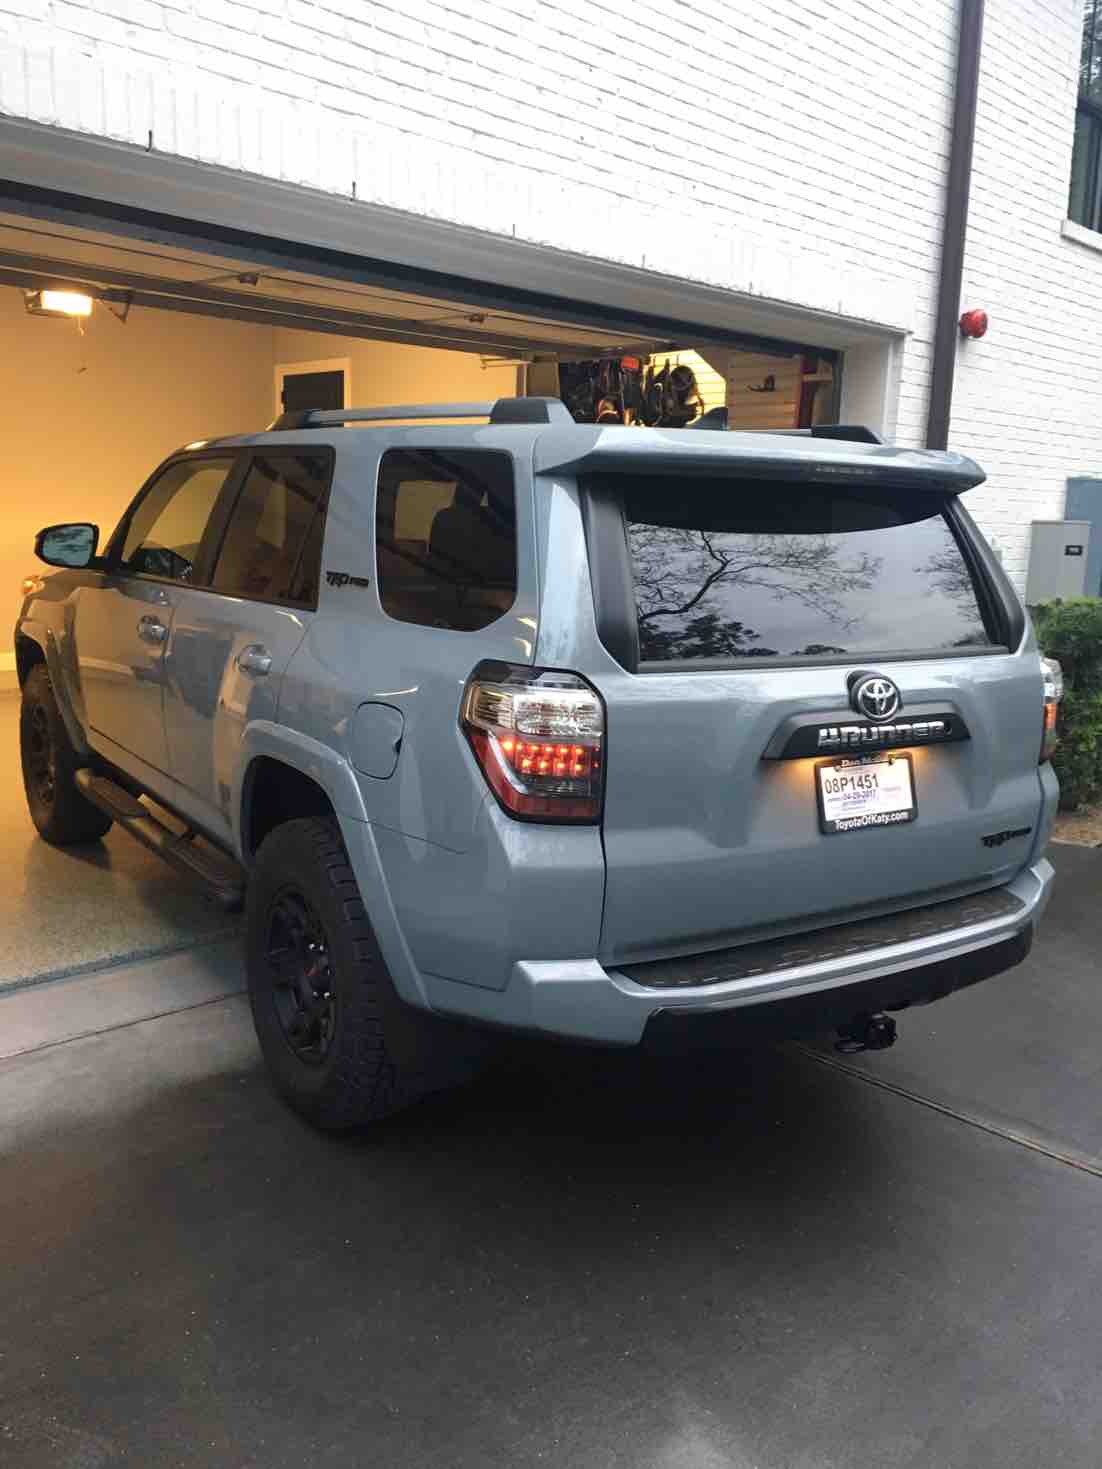 2017 4runner trd pro page 2 toyota 4runner forum largest 4runner - Just Picked This Babe Up Yesterday Attachment 241202attachment 241203